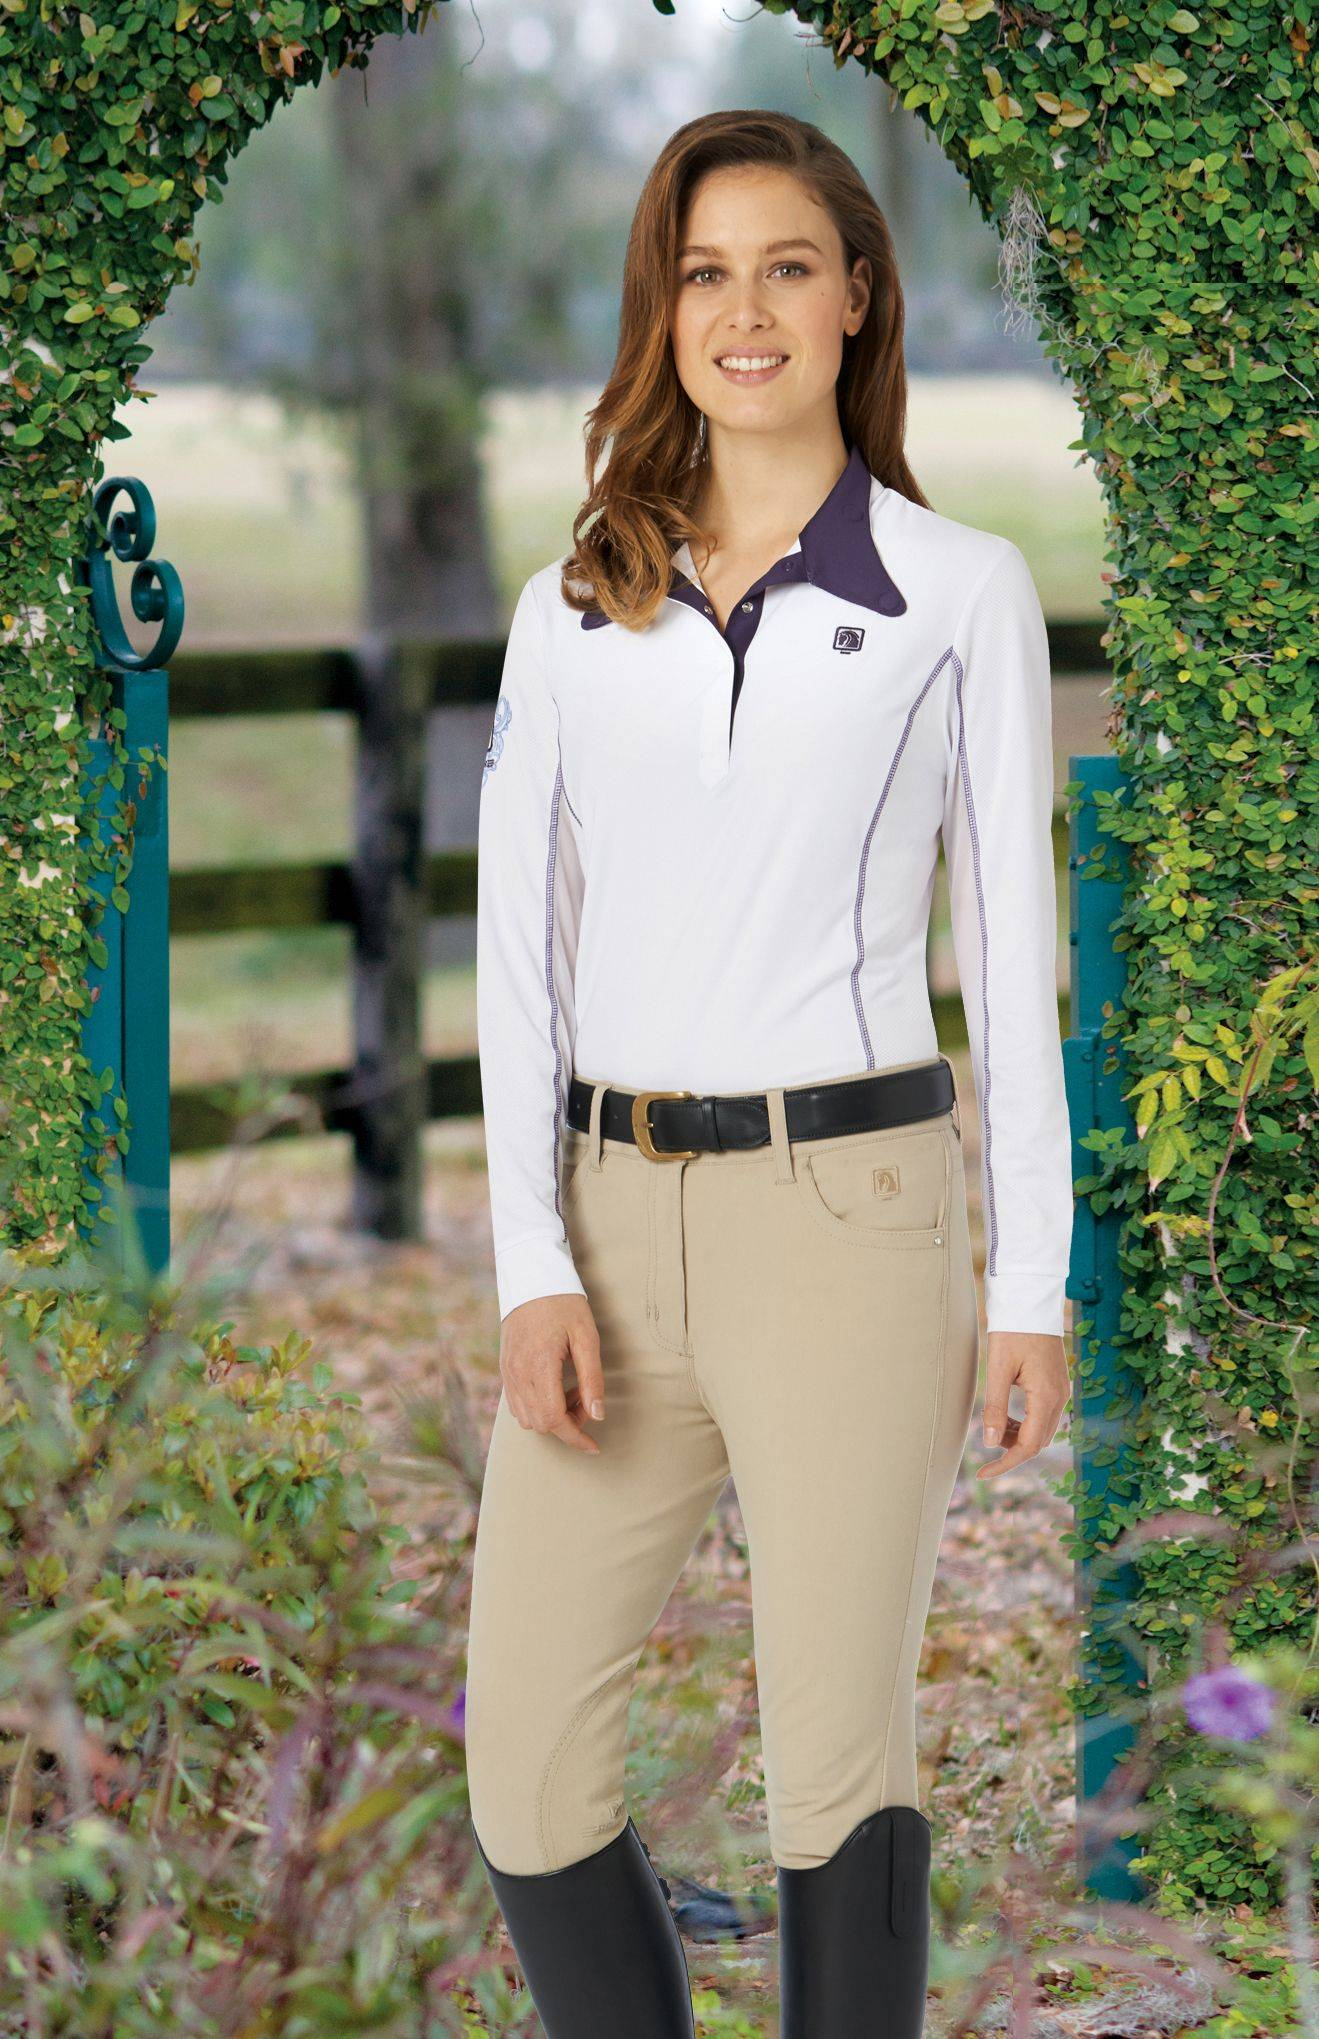 Romfh St Tropez Breeches - Ladies, Knee Patch